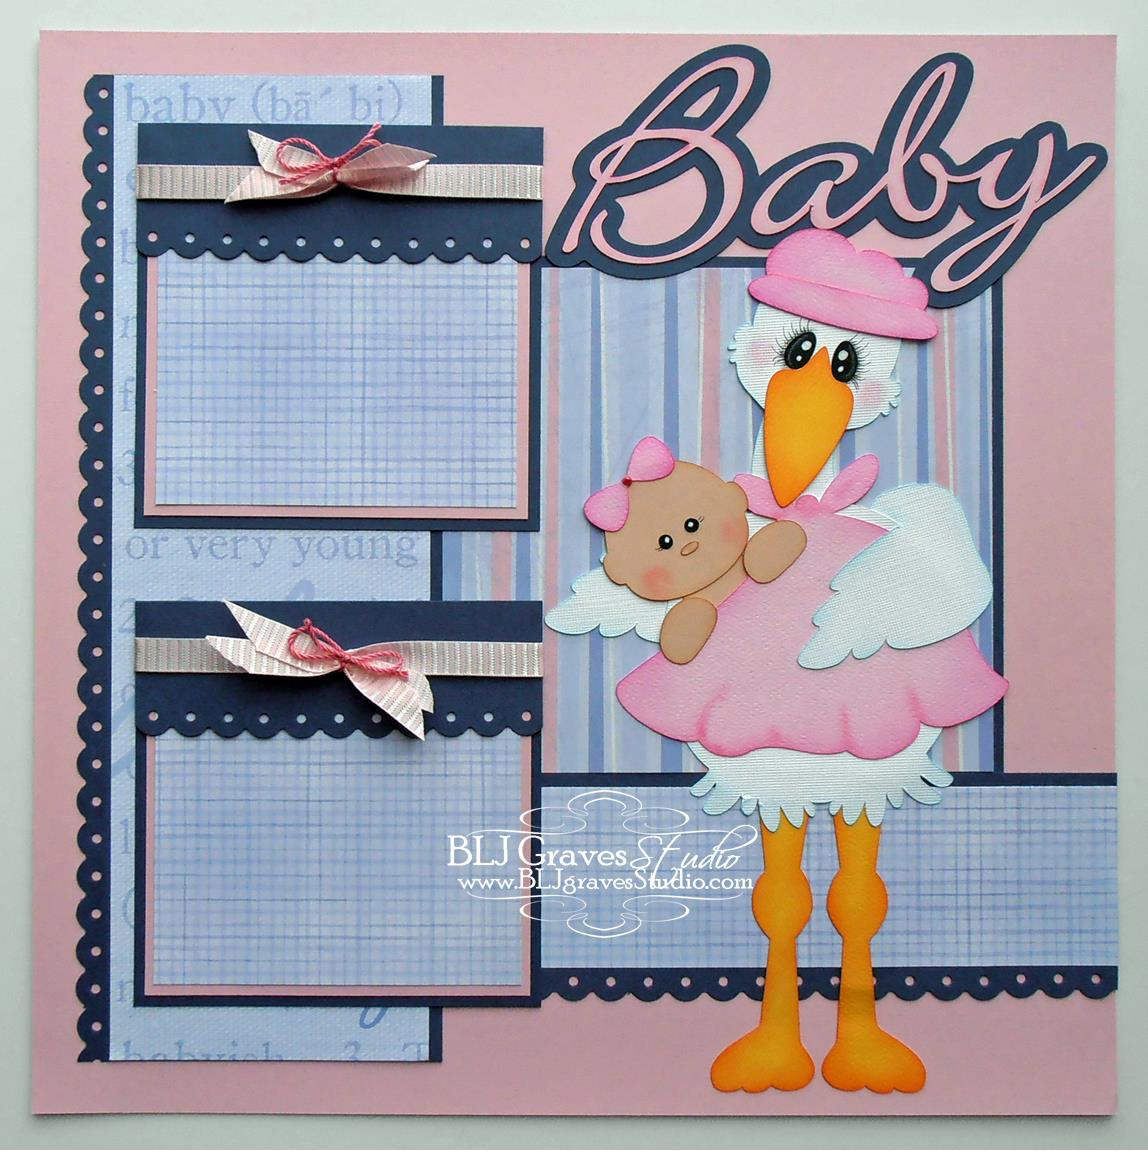 Baby girl scrapbook ideas - Baby Girl Scrapbook Page Cutting File For This Scrapbook Page From Treasure Box Designs